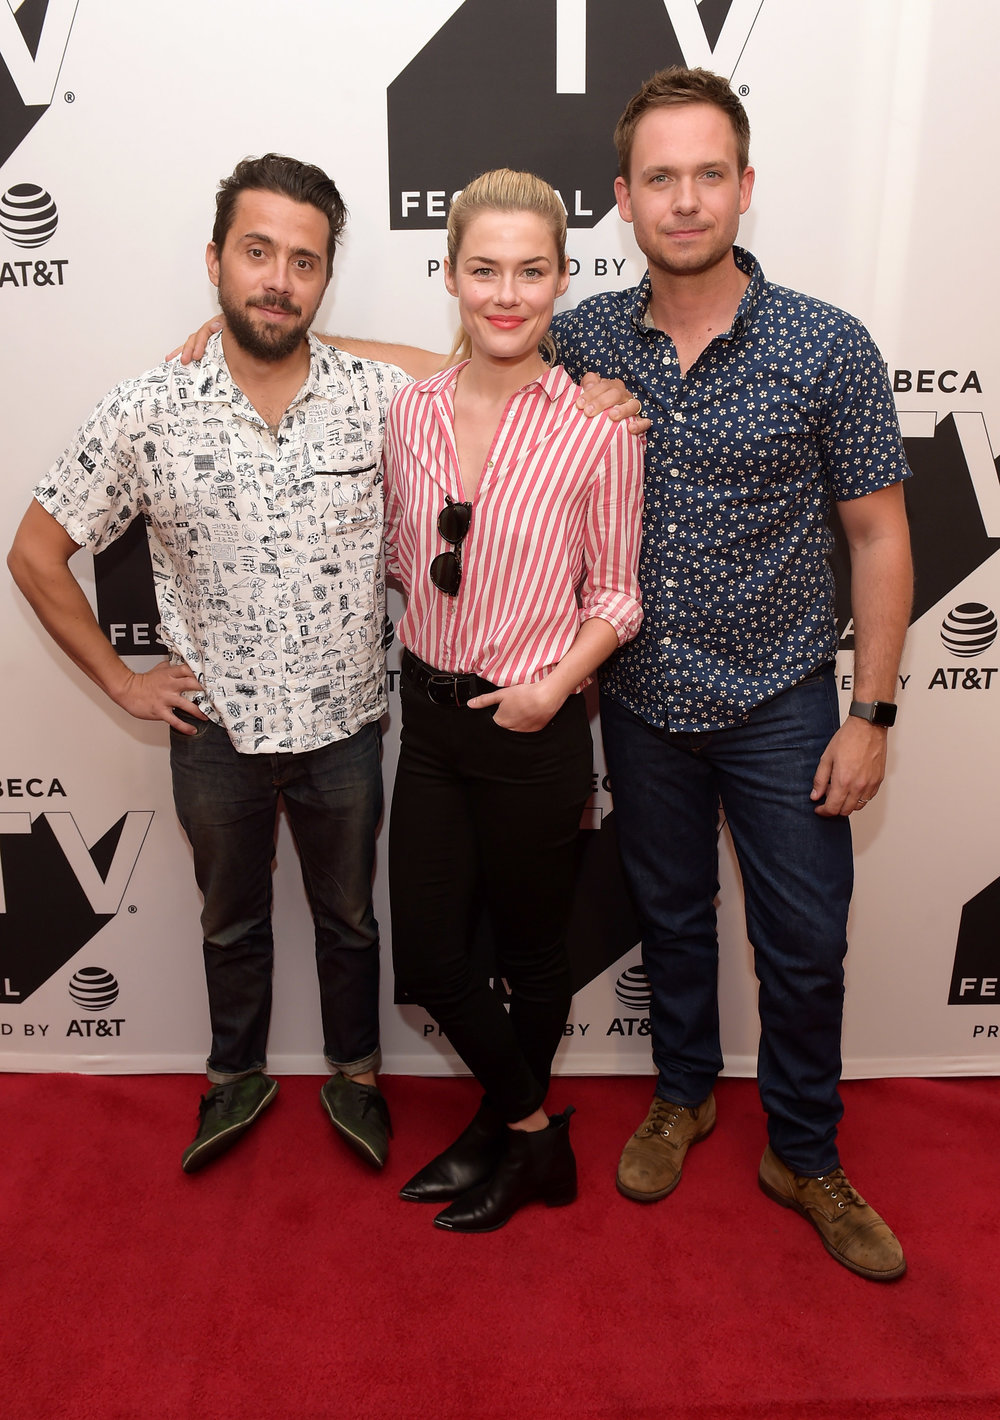 Mike Piscitelli, Rachael Taylor and Patrick J. Adams attend the Tribeca TV Festival screening of Pillow Talk at Cinepolis Chelsea on September 23, 2017 in New York City. (Photo by Jason KempinGetty Images for Tri.jpg